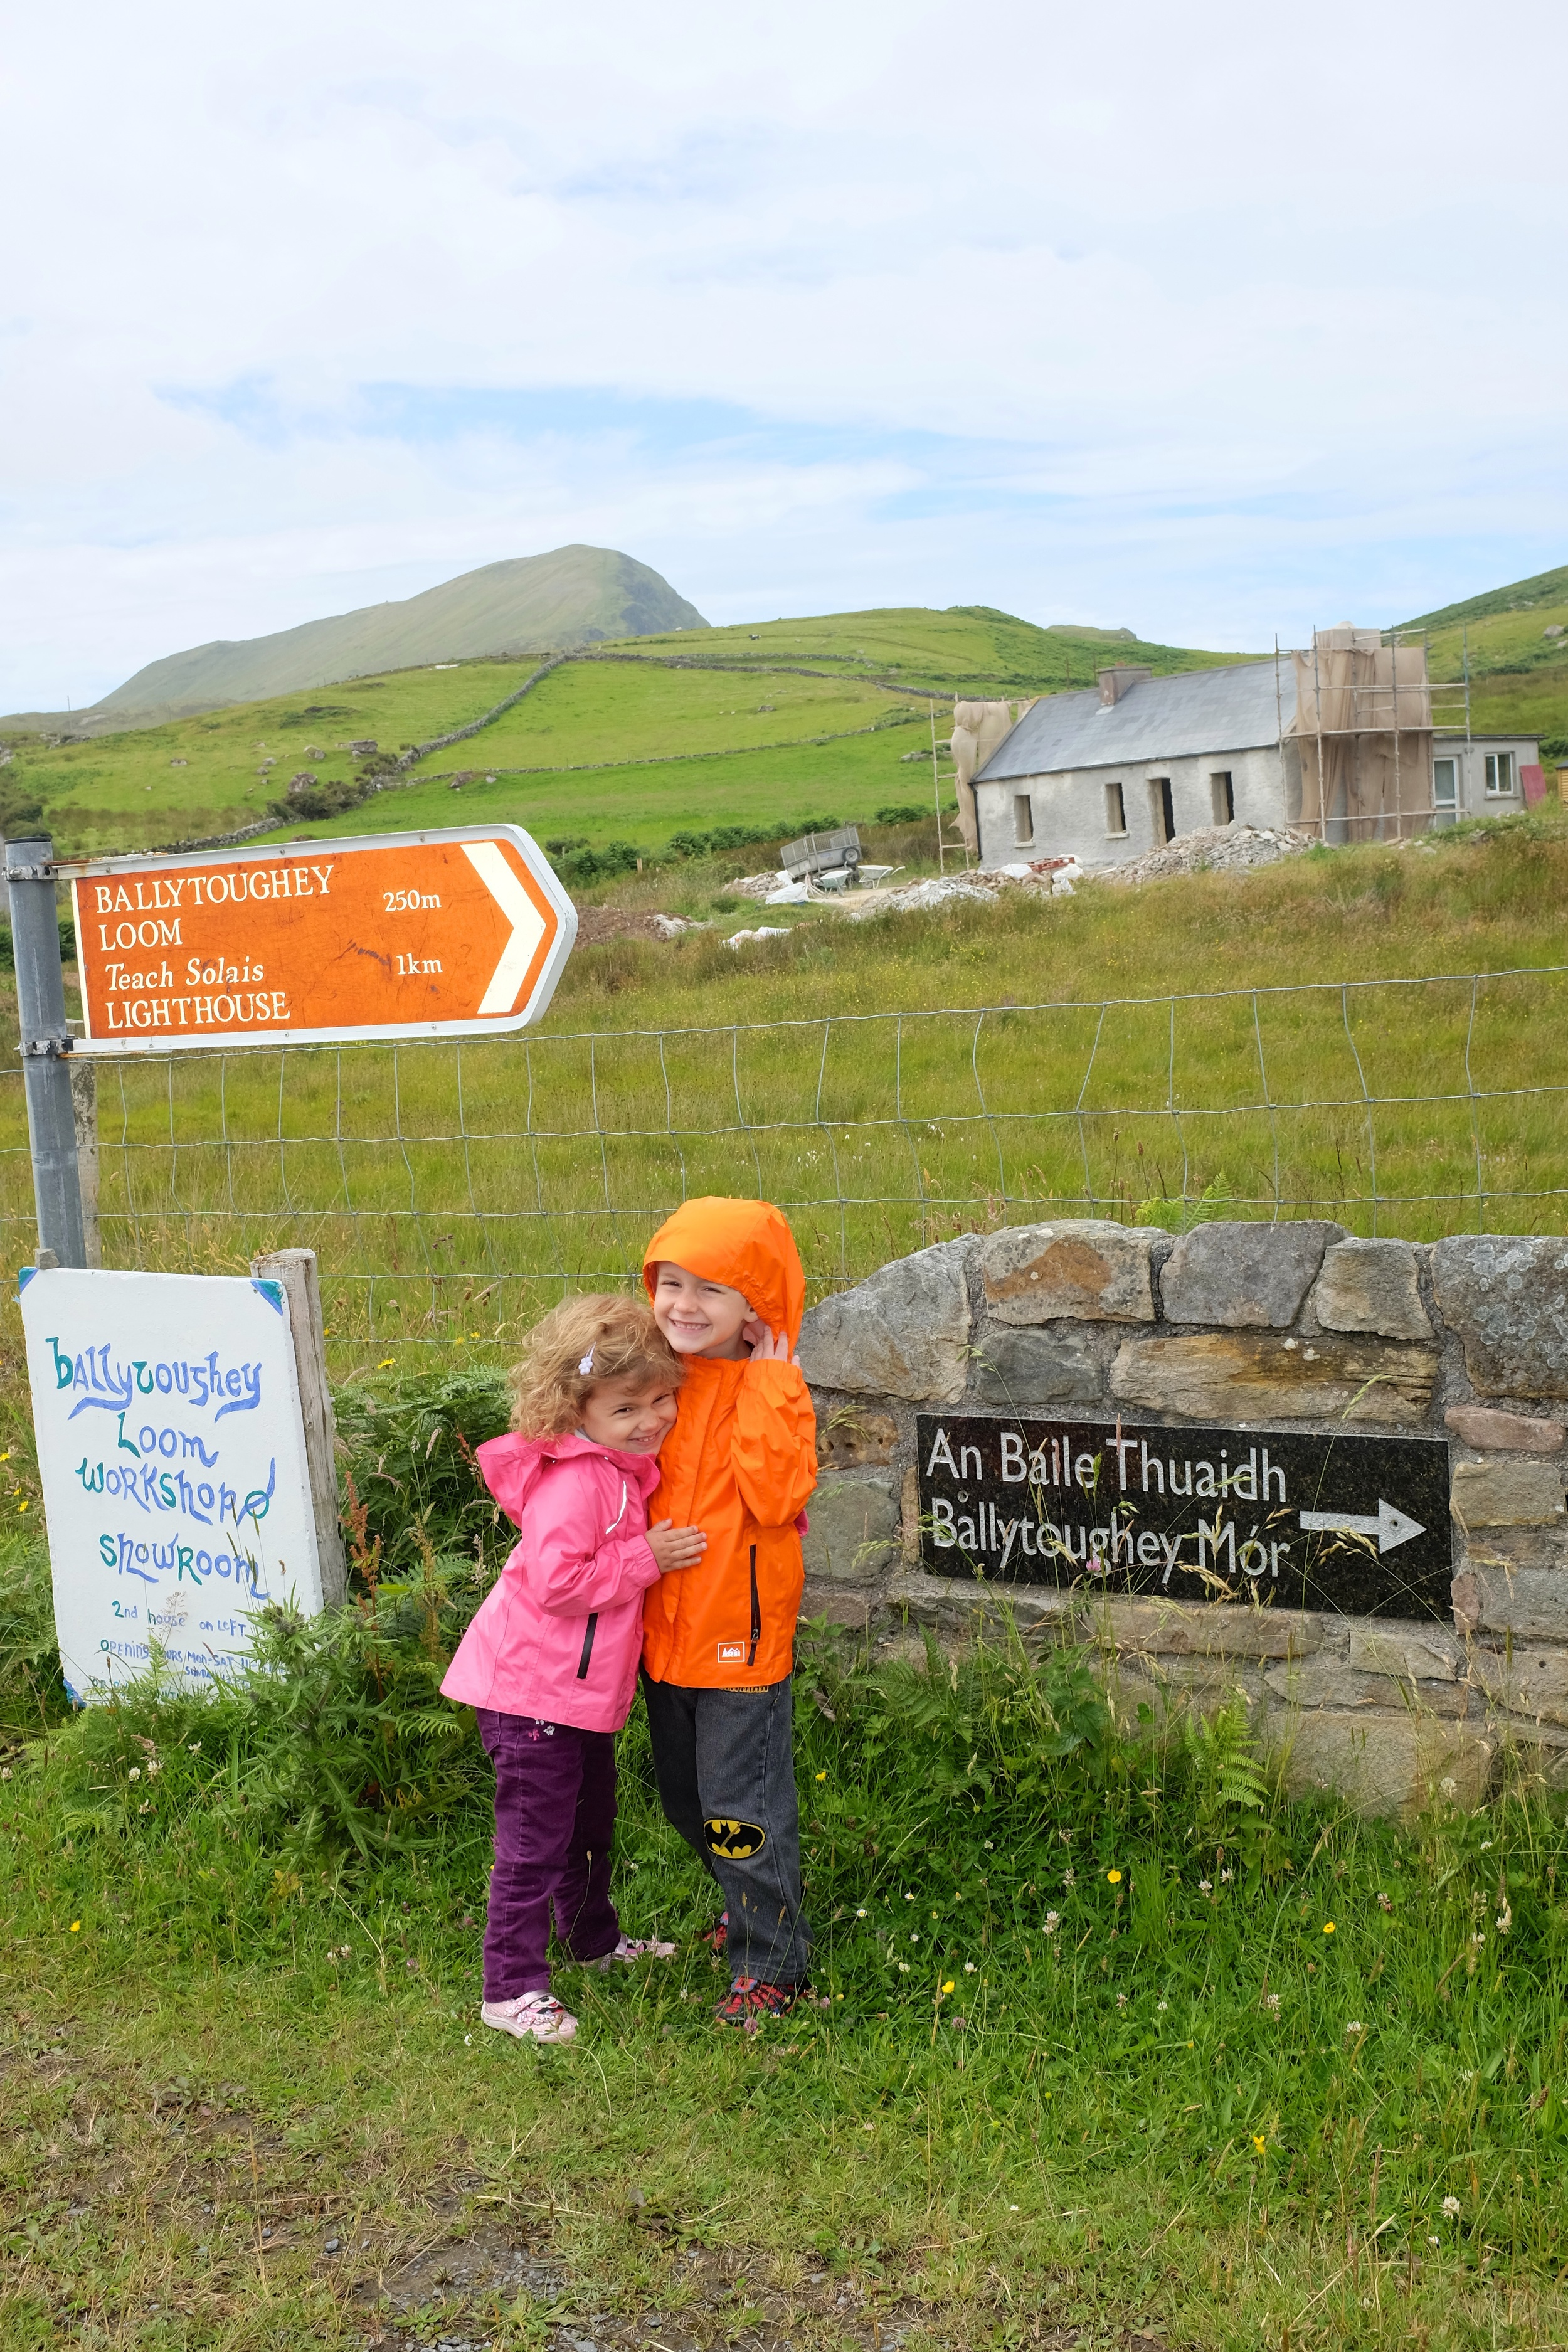 Kian and Hannah at the 1 km mark. Although I think this sign is not very accurate. The walk felt much longer than 1 km.